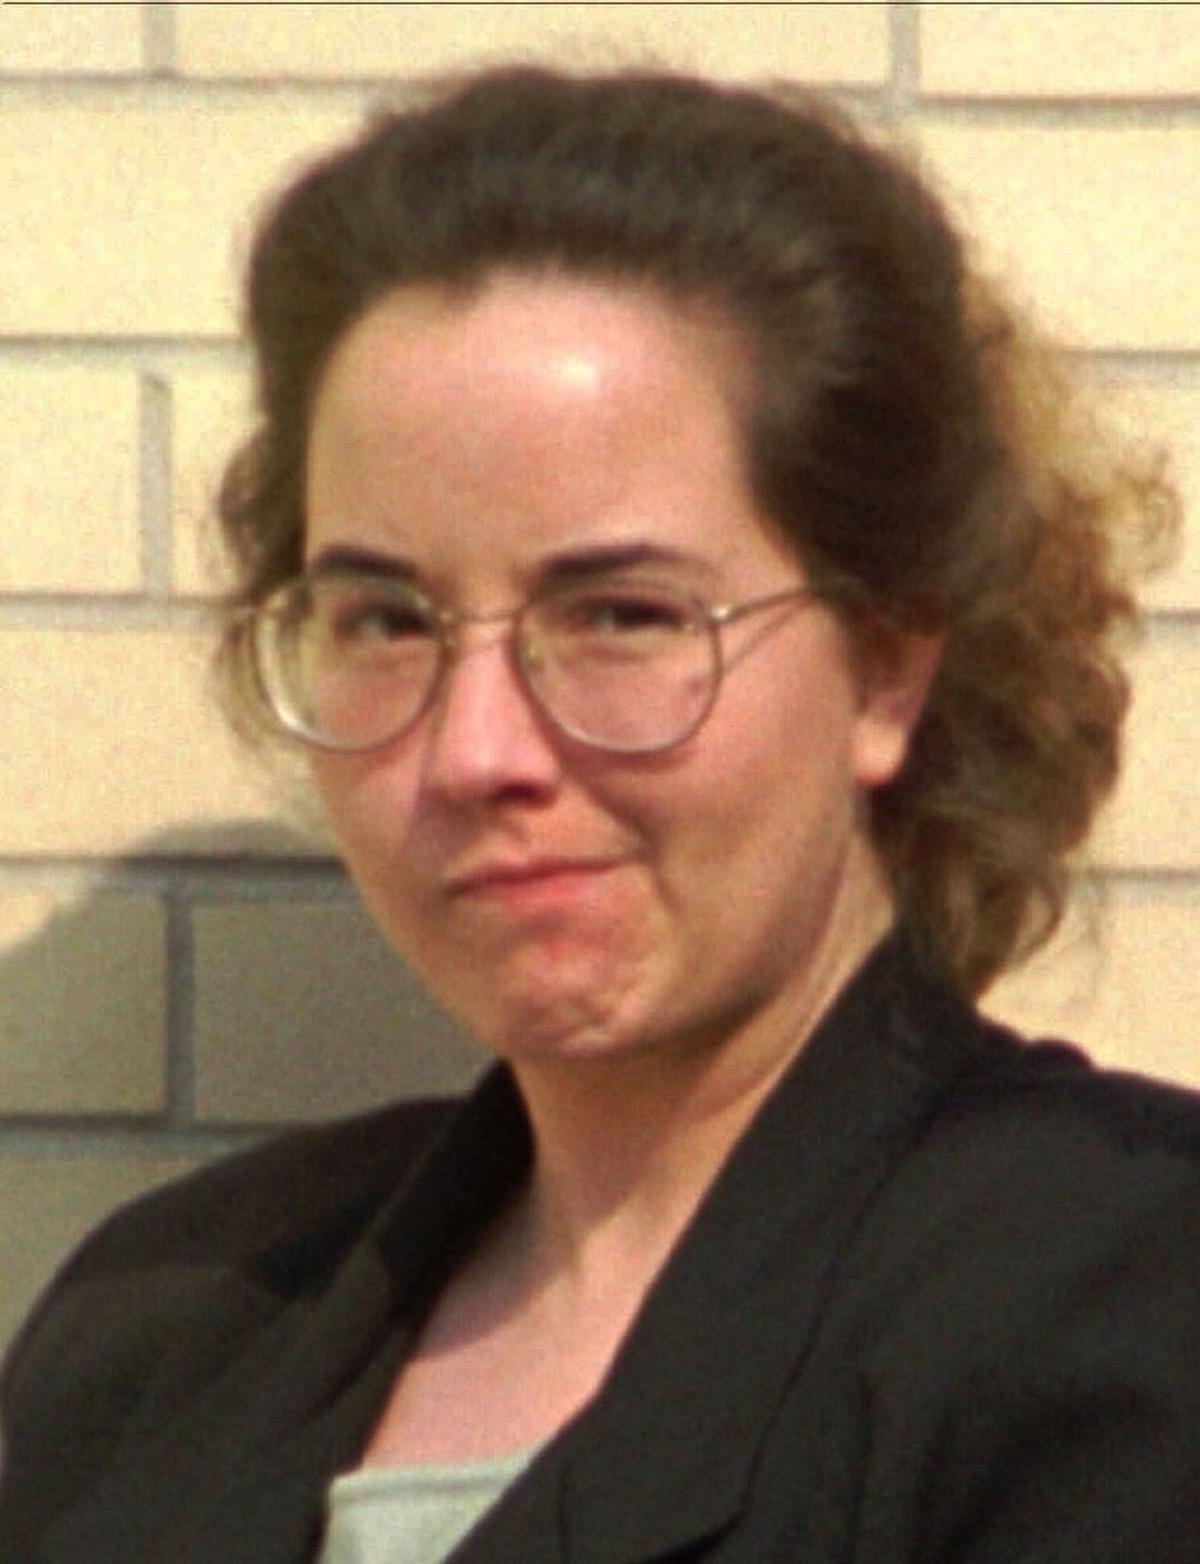 Susan Smith tells paper she never planned to kill sons